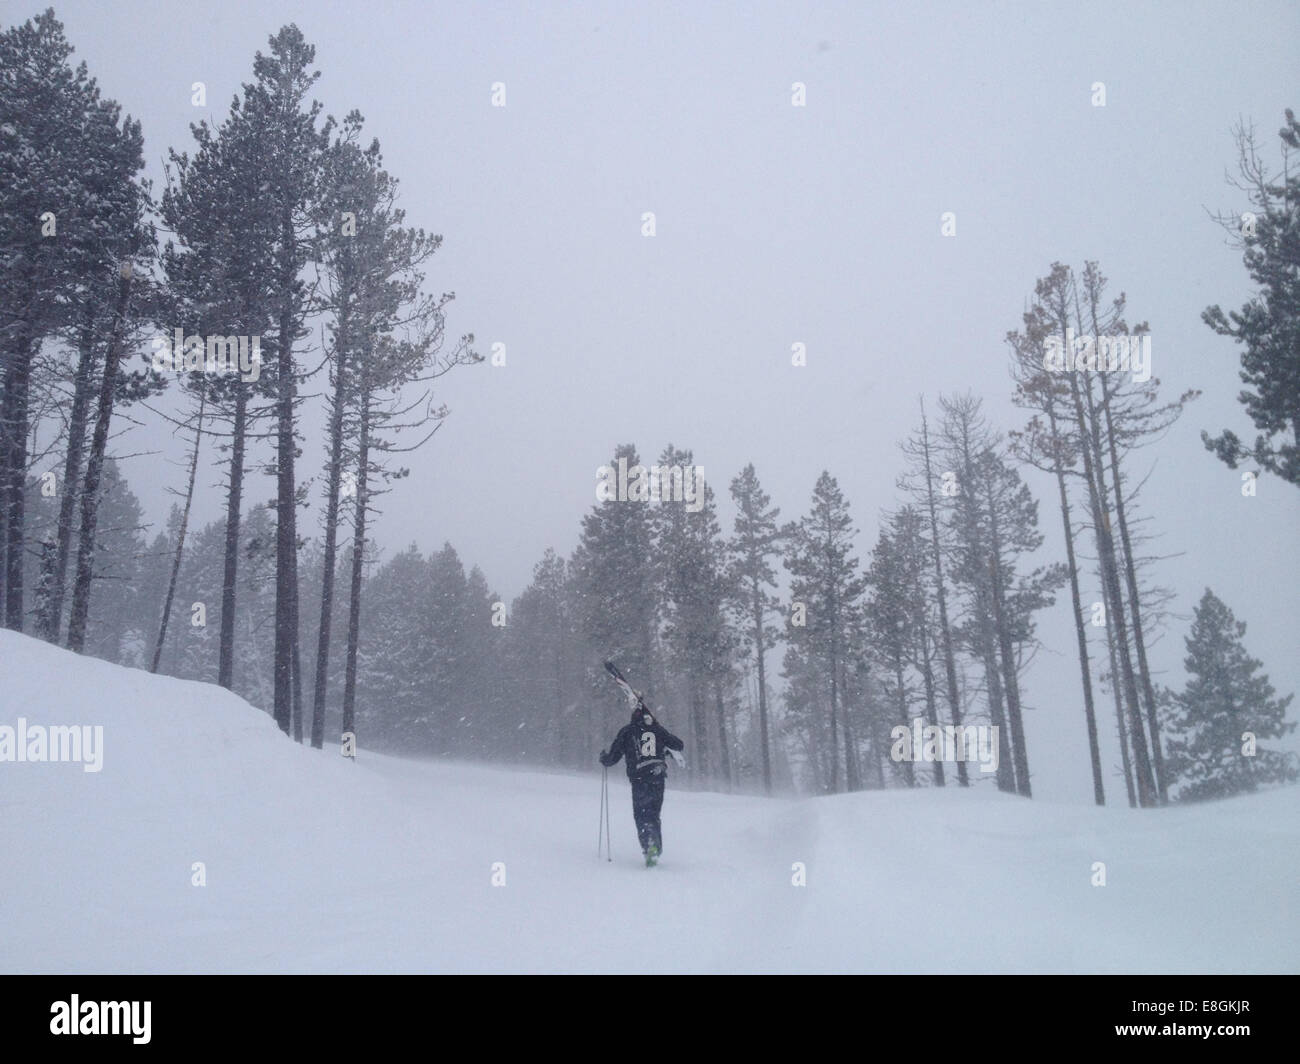 Rear view of man walking up hill, carrying skies - Stock Image